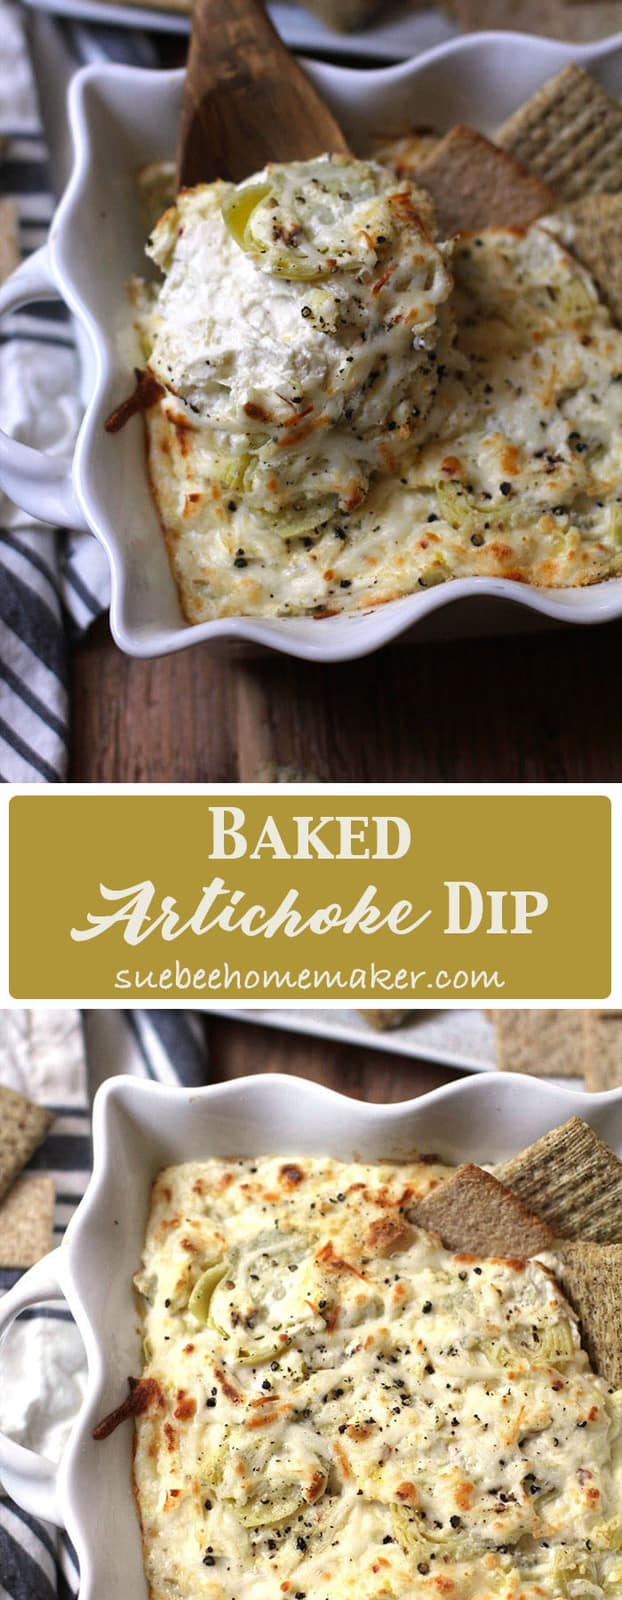 My Baked Artichoke Dip is all kinds of creamy deliciousness in a bowl. Ten minute prep, 30 minutes in the oven, and it's snack time. Bring on Game Day! | suebeehomemaker.com